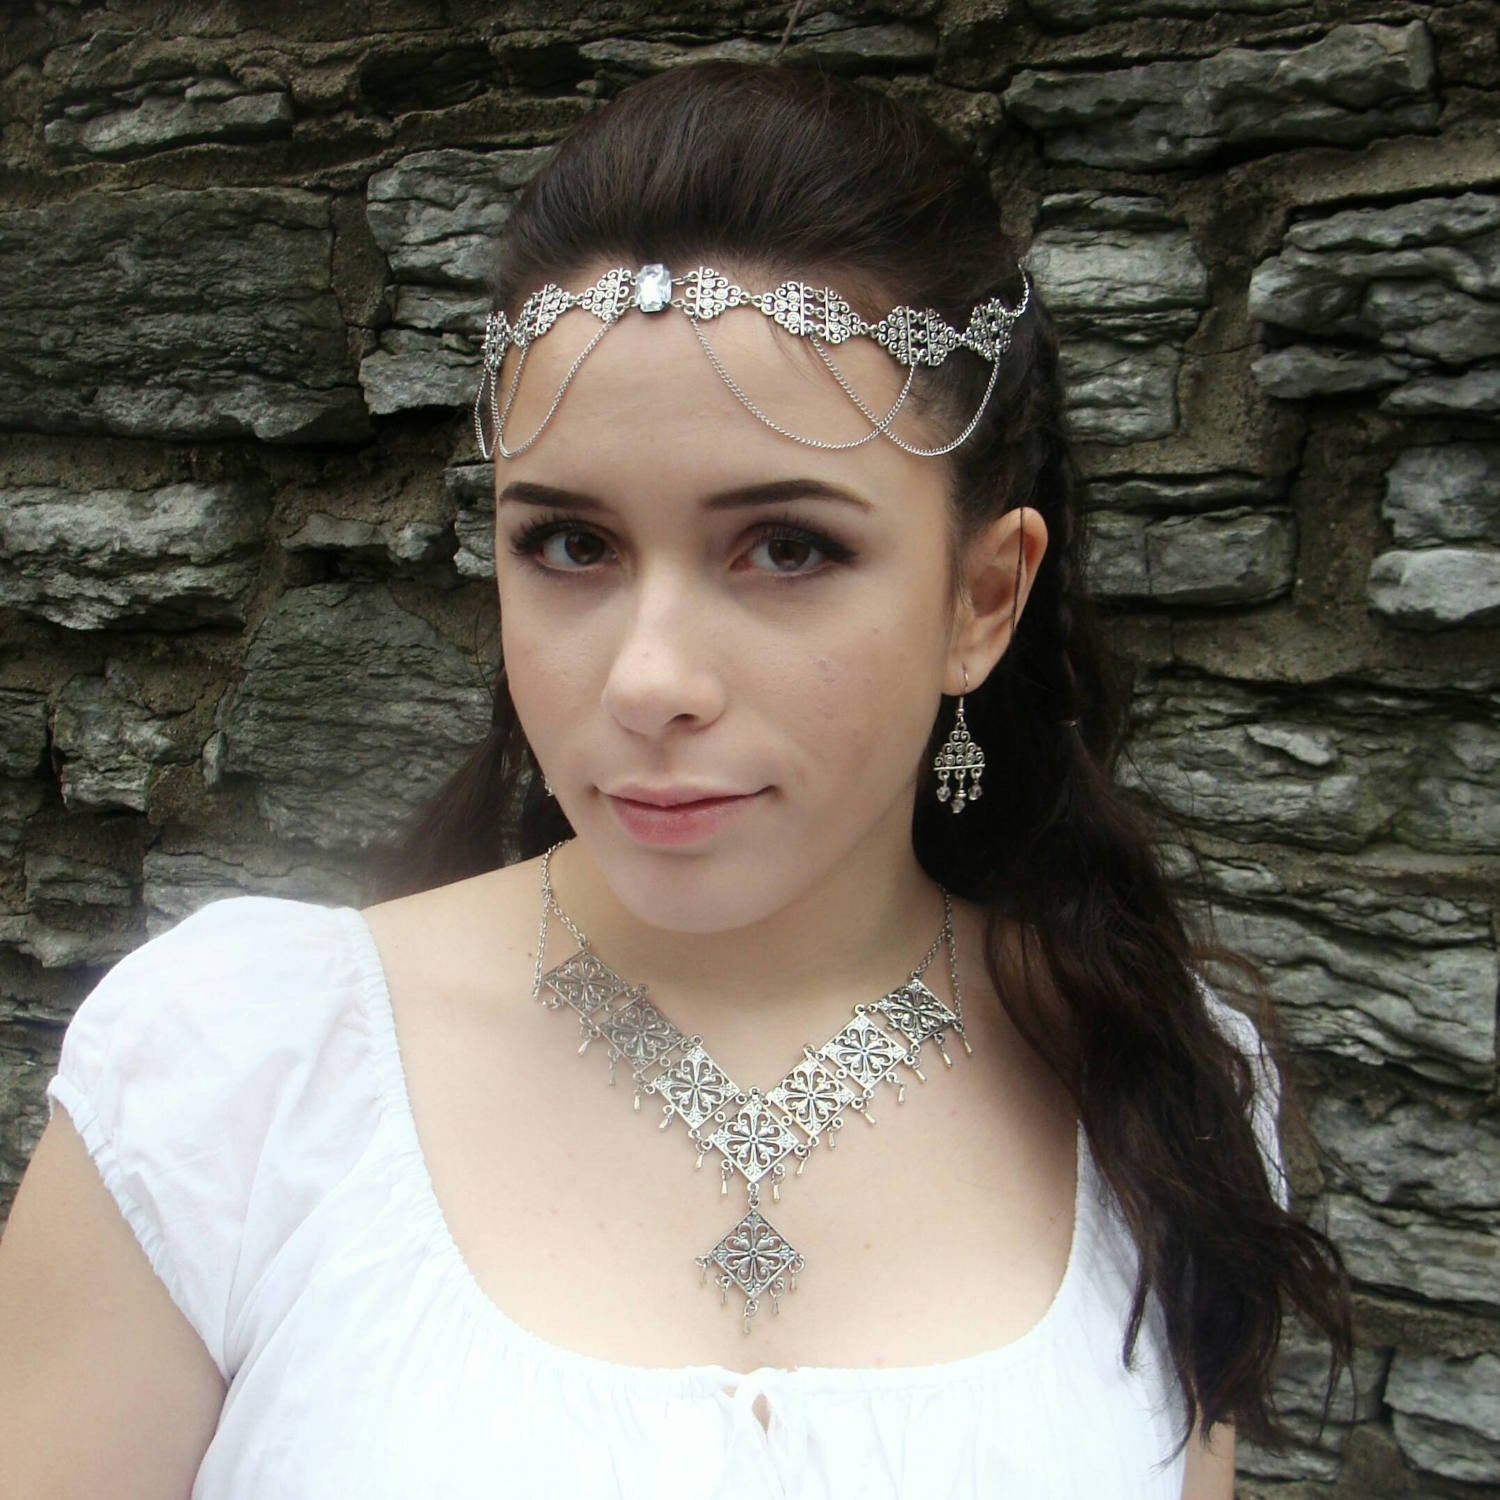 Gothic Necklace - Ren Faire - Bridesmaid Jewelry - Gothic Victorian - Silver Bridal Jewelry - Princess Cosplay - Silver Statement Necklace - Handmade Jewelry - Ren Faire - DRAVYNMOOR